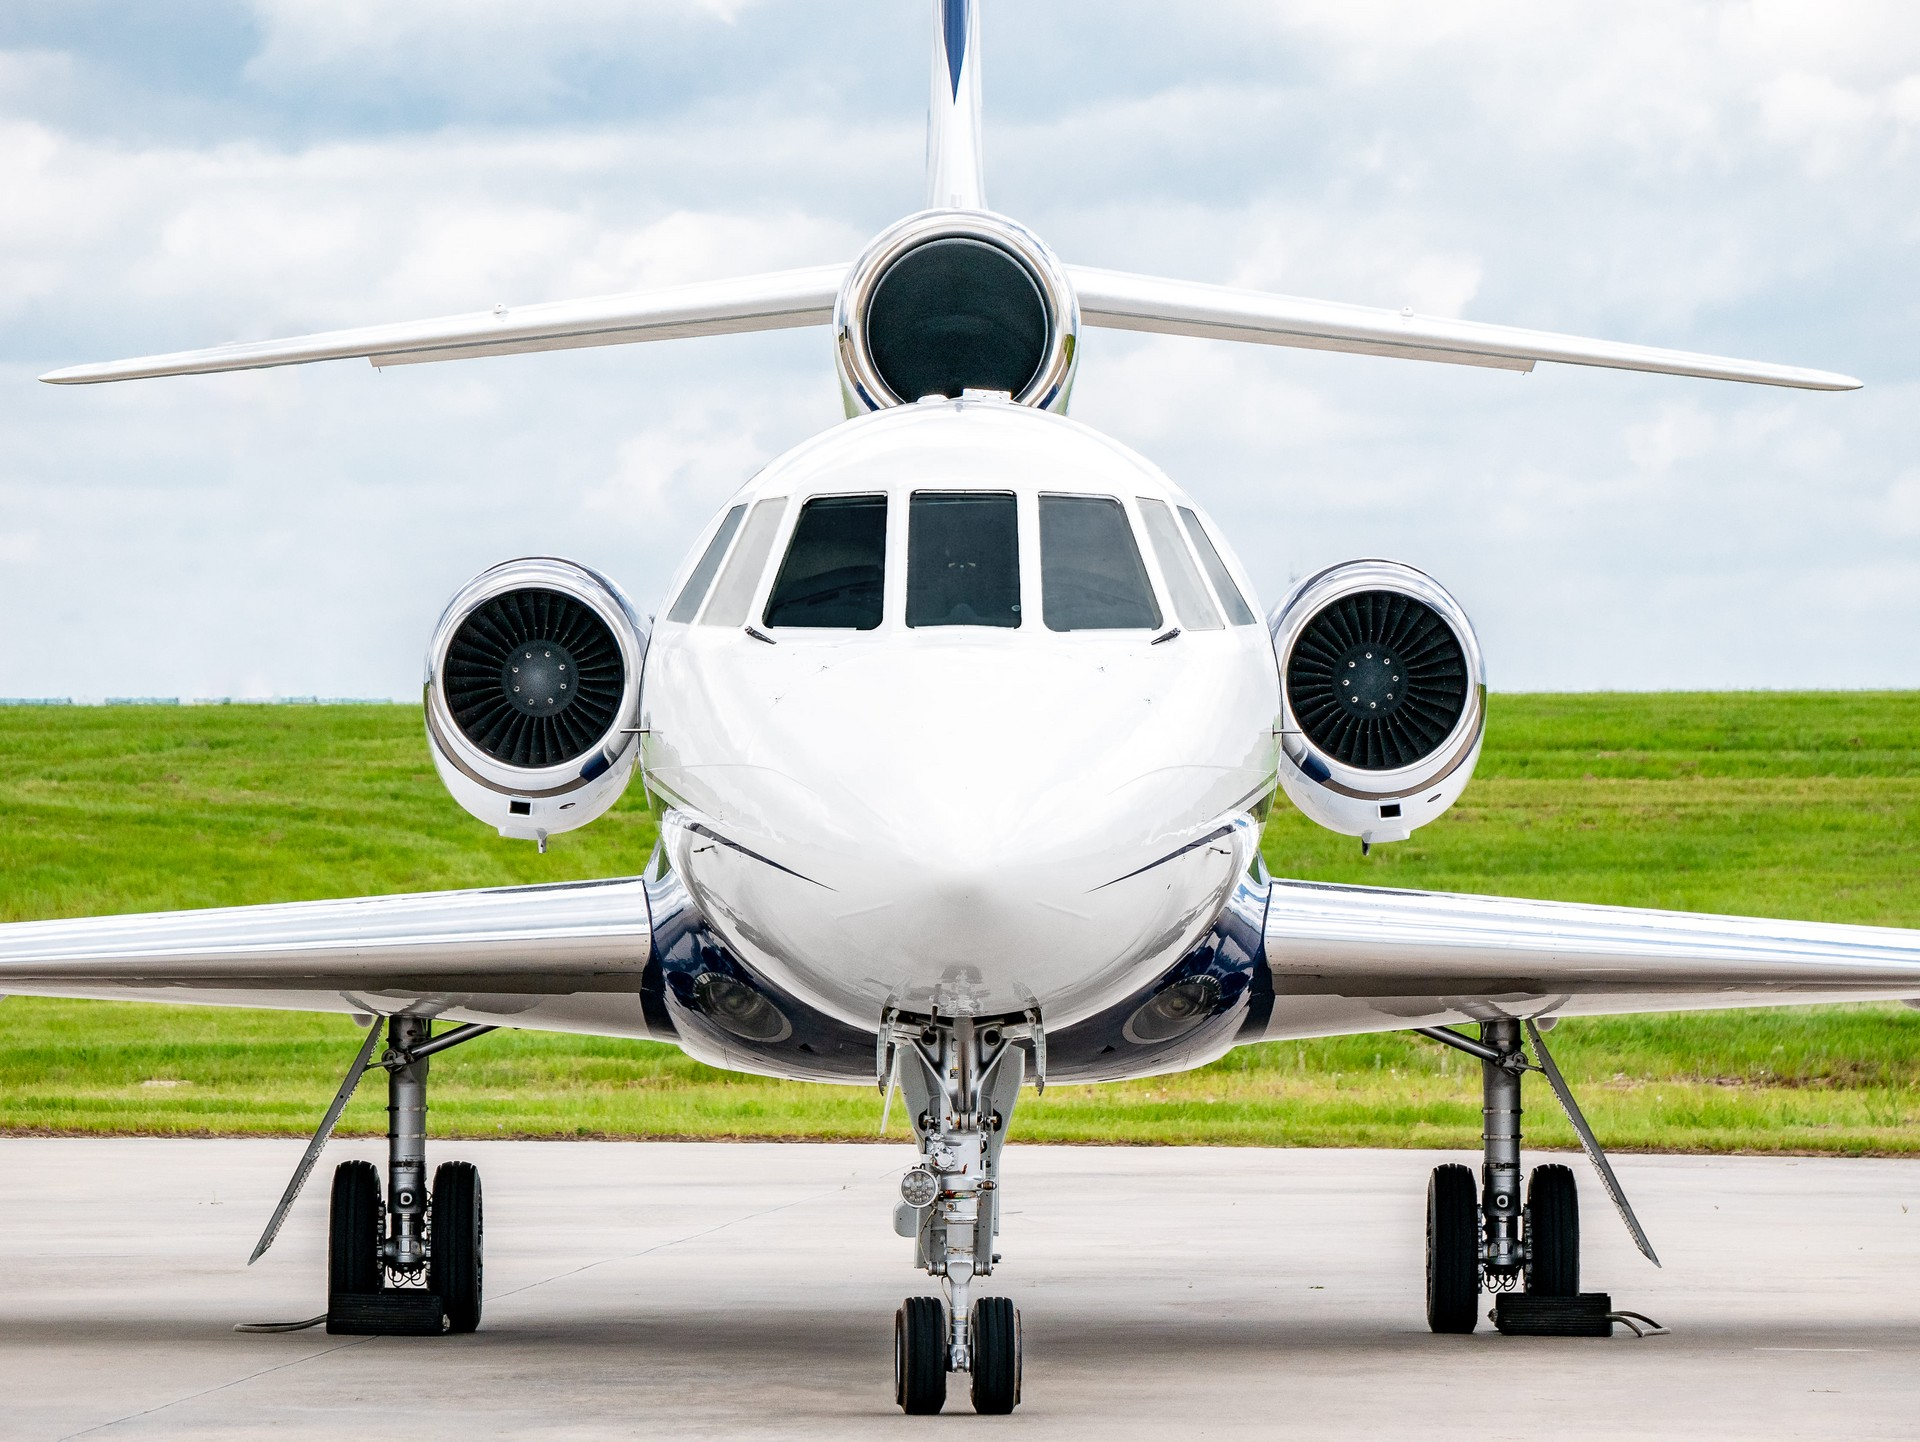 Broadview Heights Private Jet and Air Charter Flights